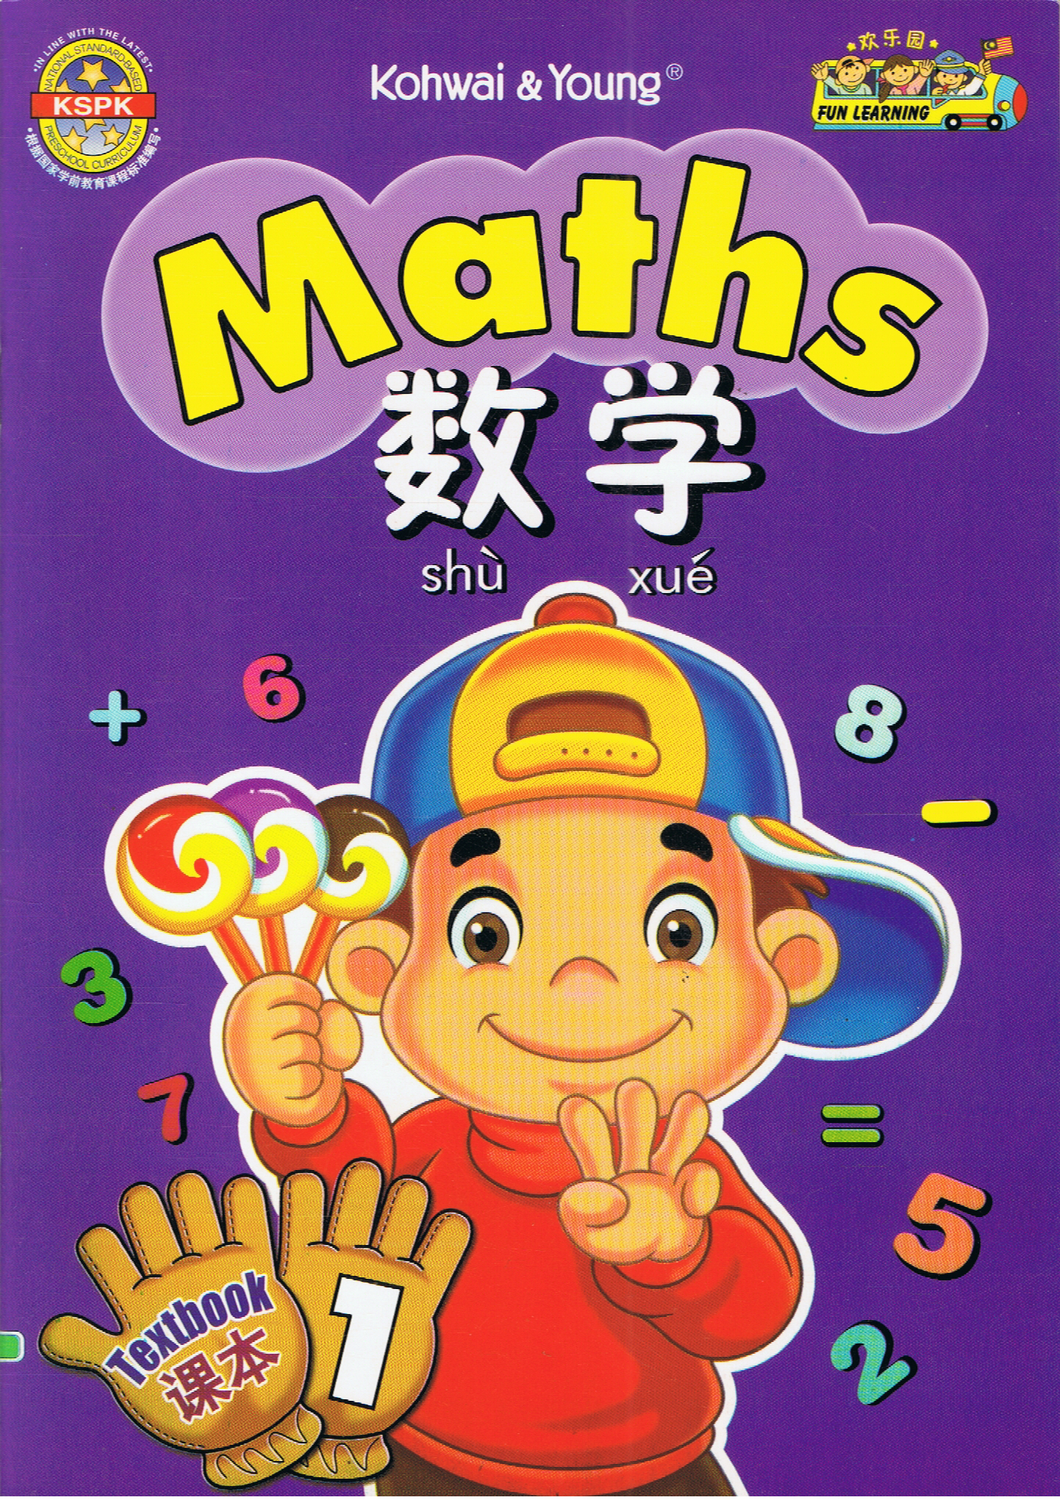 Fun Learning Maths Series Textbook 1